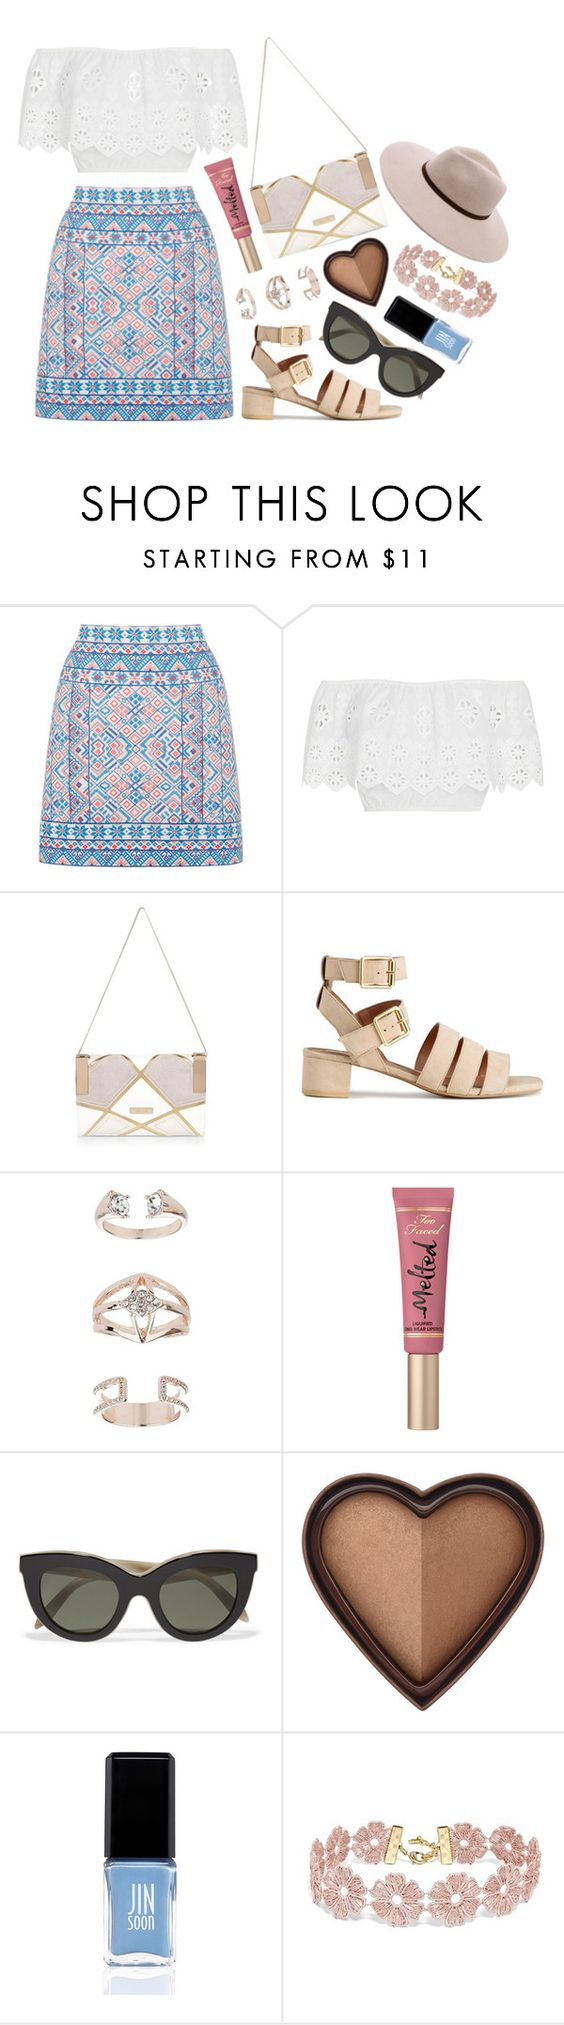 """Summer"" by stephlv ❤ liked on Polyvore featuring Oasis, Miguelina, River Island, Topshop, Too Faced Cosmetics, Victoria Beckham, JINsoon, BaubleBar and Billabong"